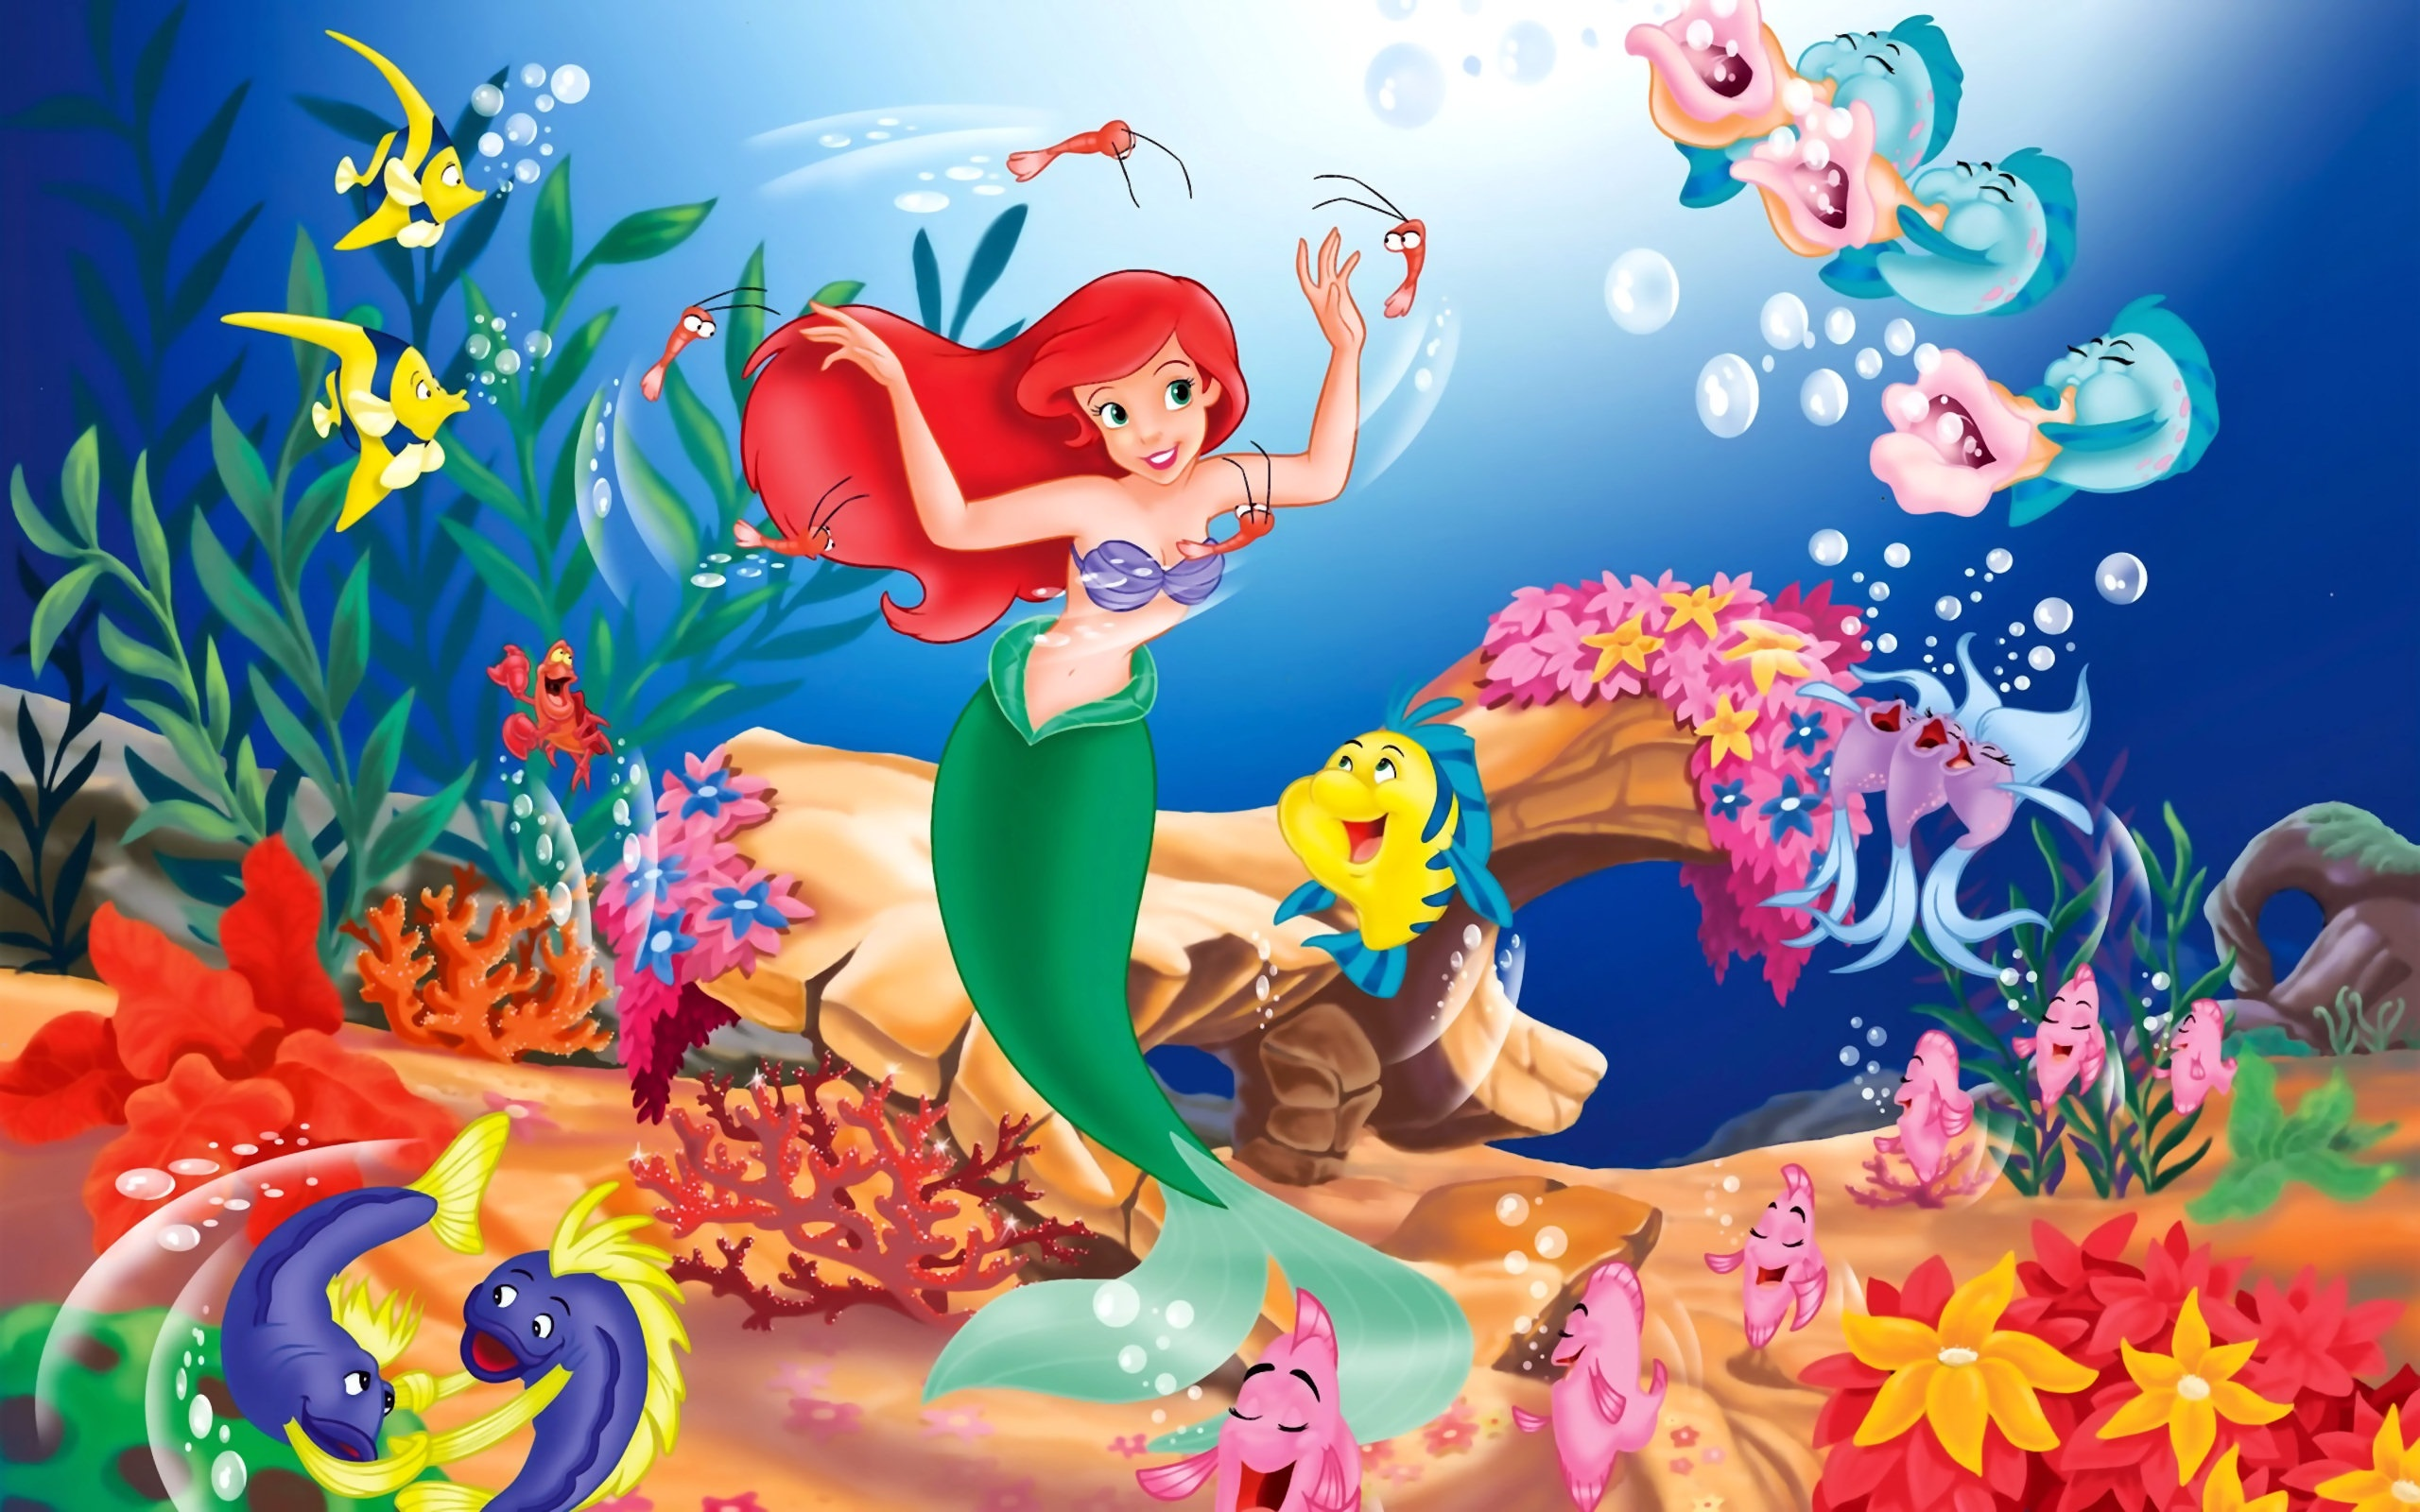 Disney The Little Mermaid Wallpapers HD Wallpapers 2560x1600